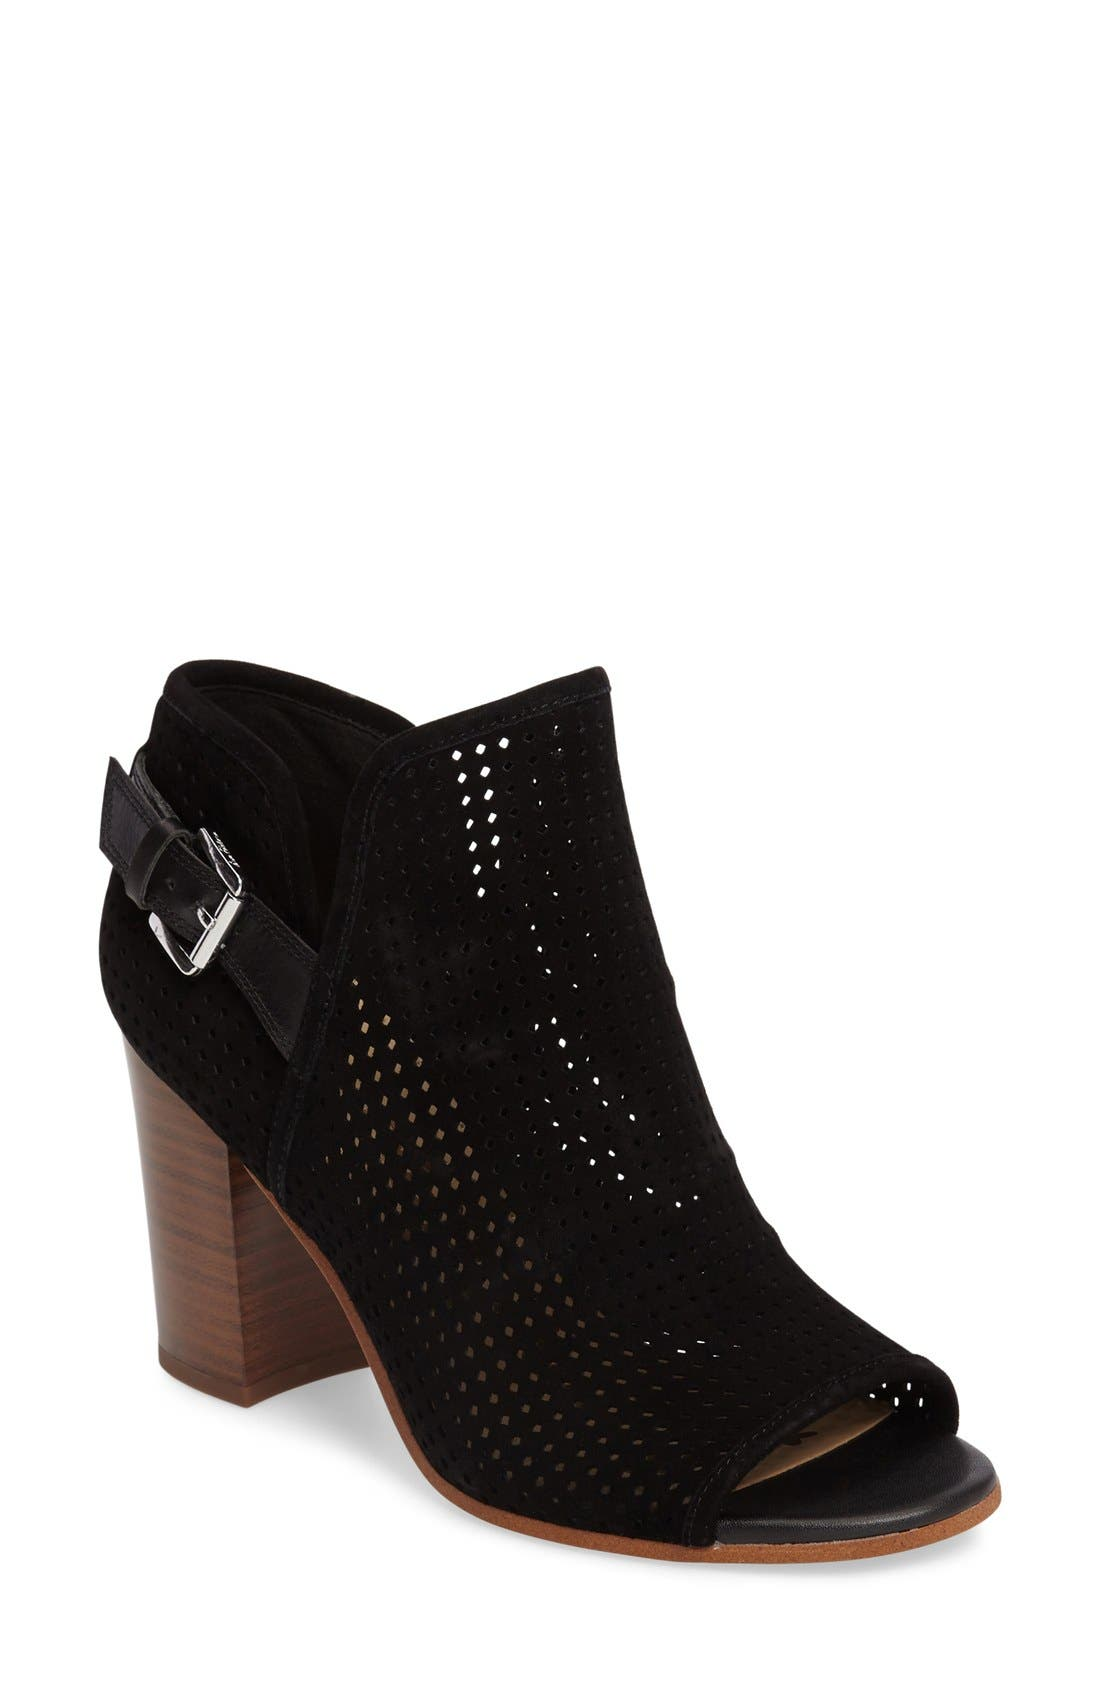 Main Image - Sam Edelman Easton Perforated Open Toe Bootie (Women)